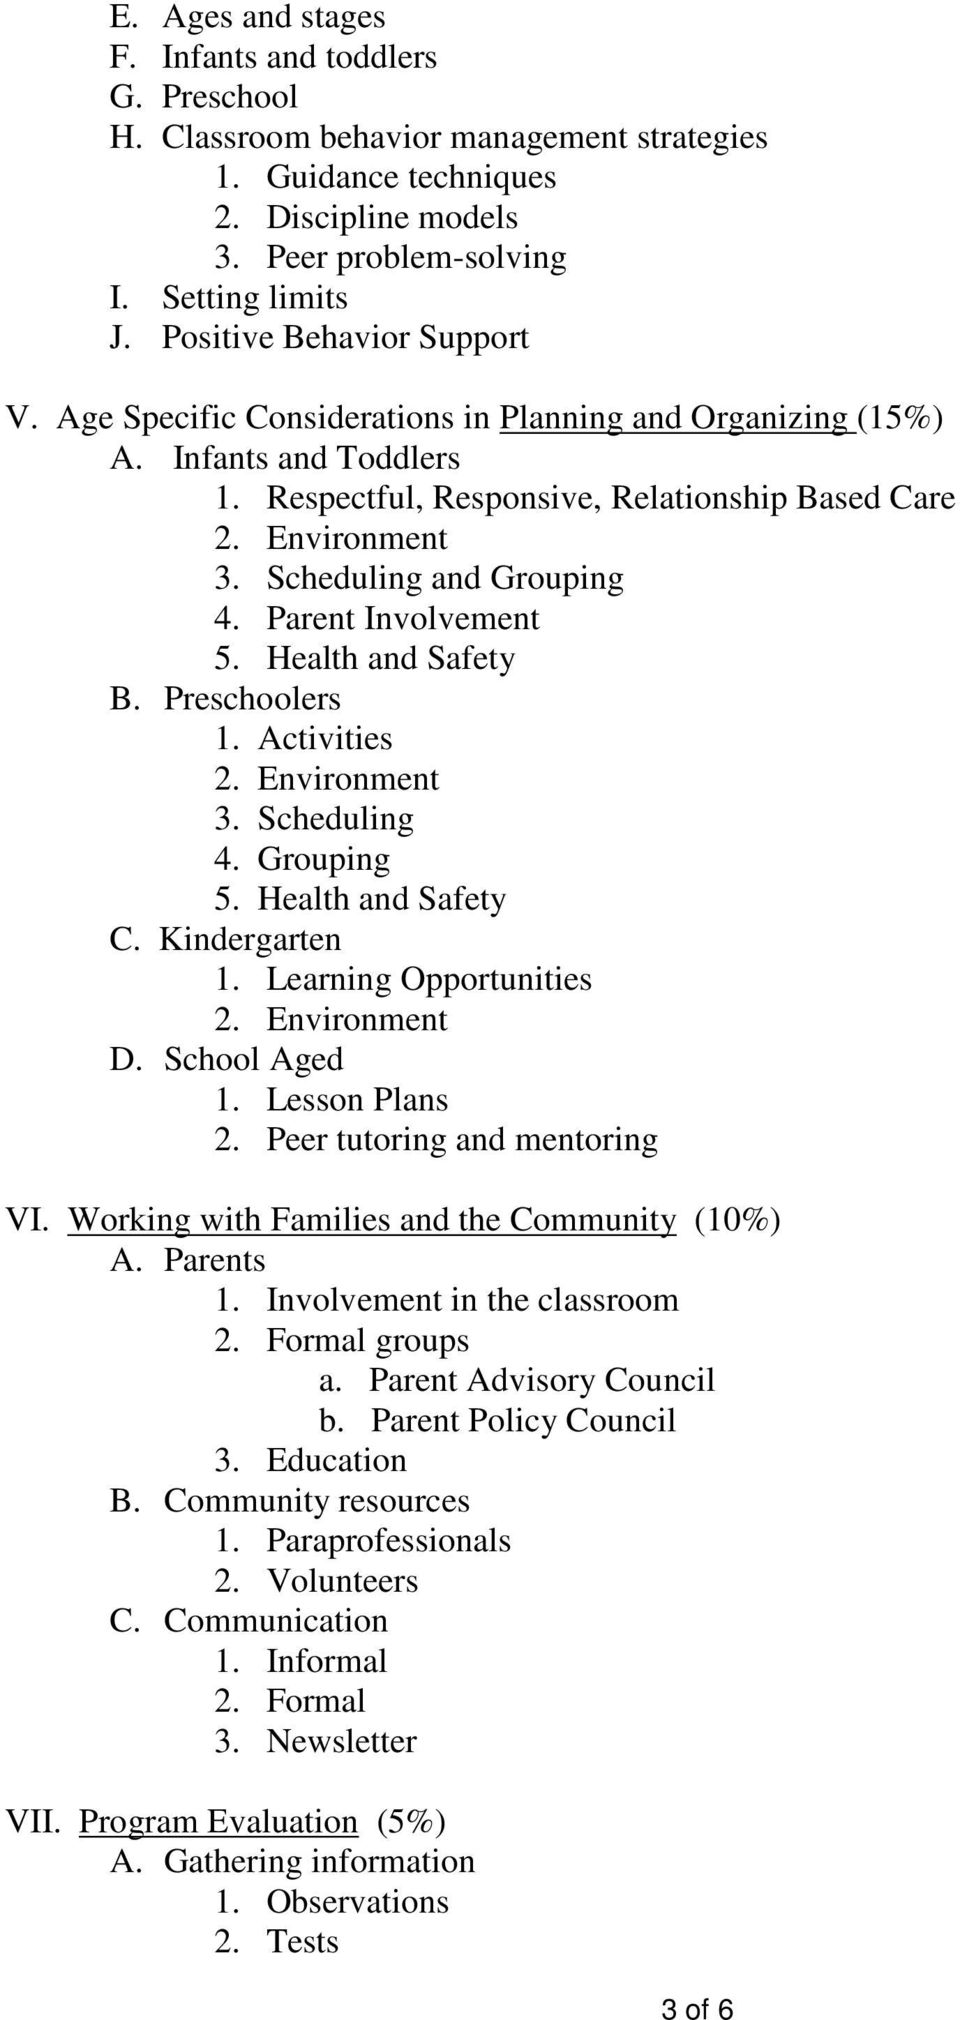 Scheduling and Grouping 4. Parent Involvement 5. Health and Safety B. Preschoolers 1. Activities 2. Environment 3. Scheduling 4. Grouping 5. Health and Safety C. Kindergarten 1.